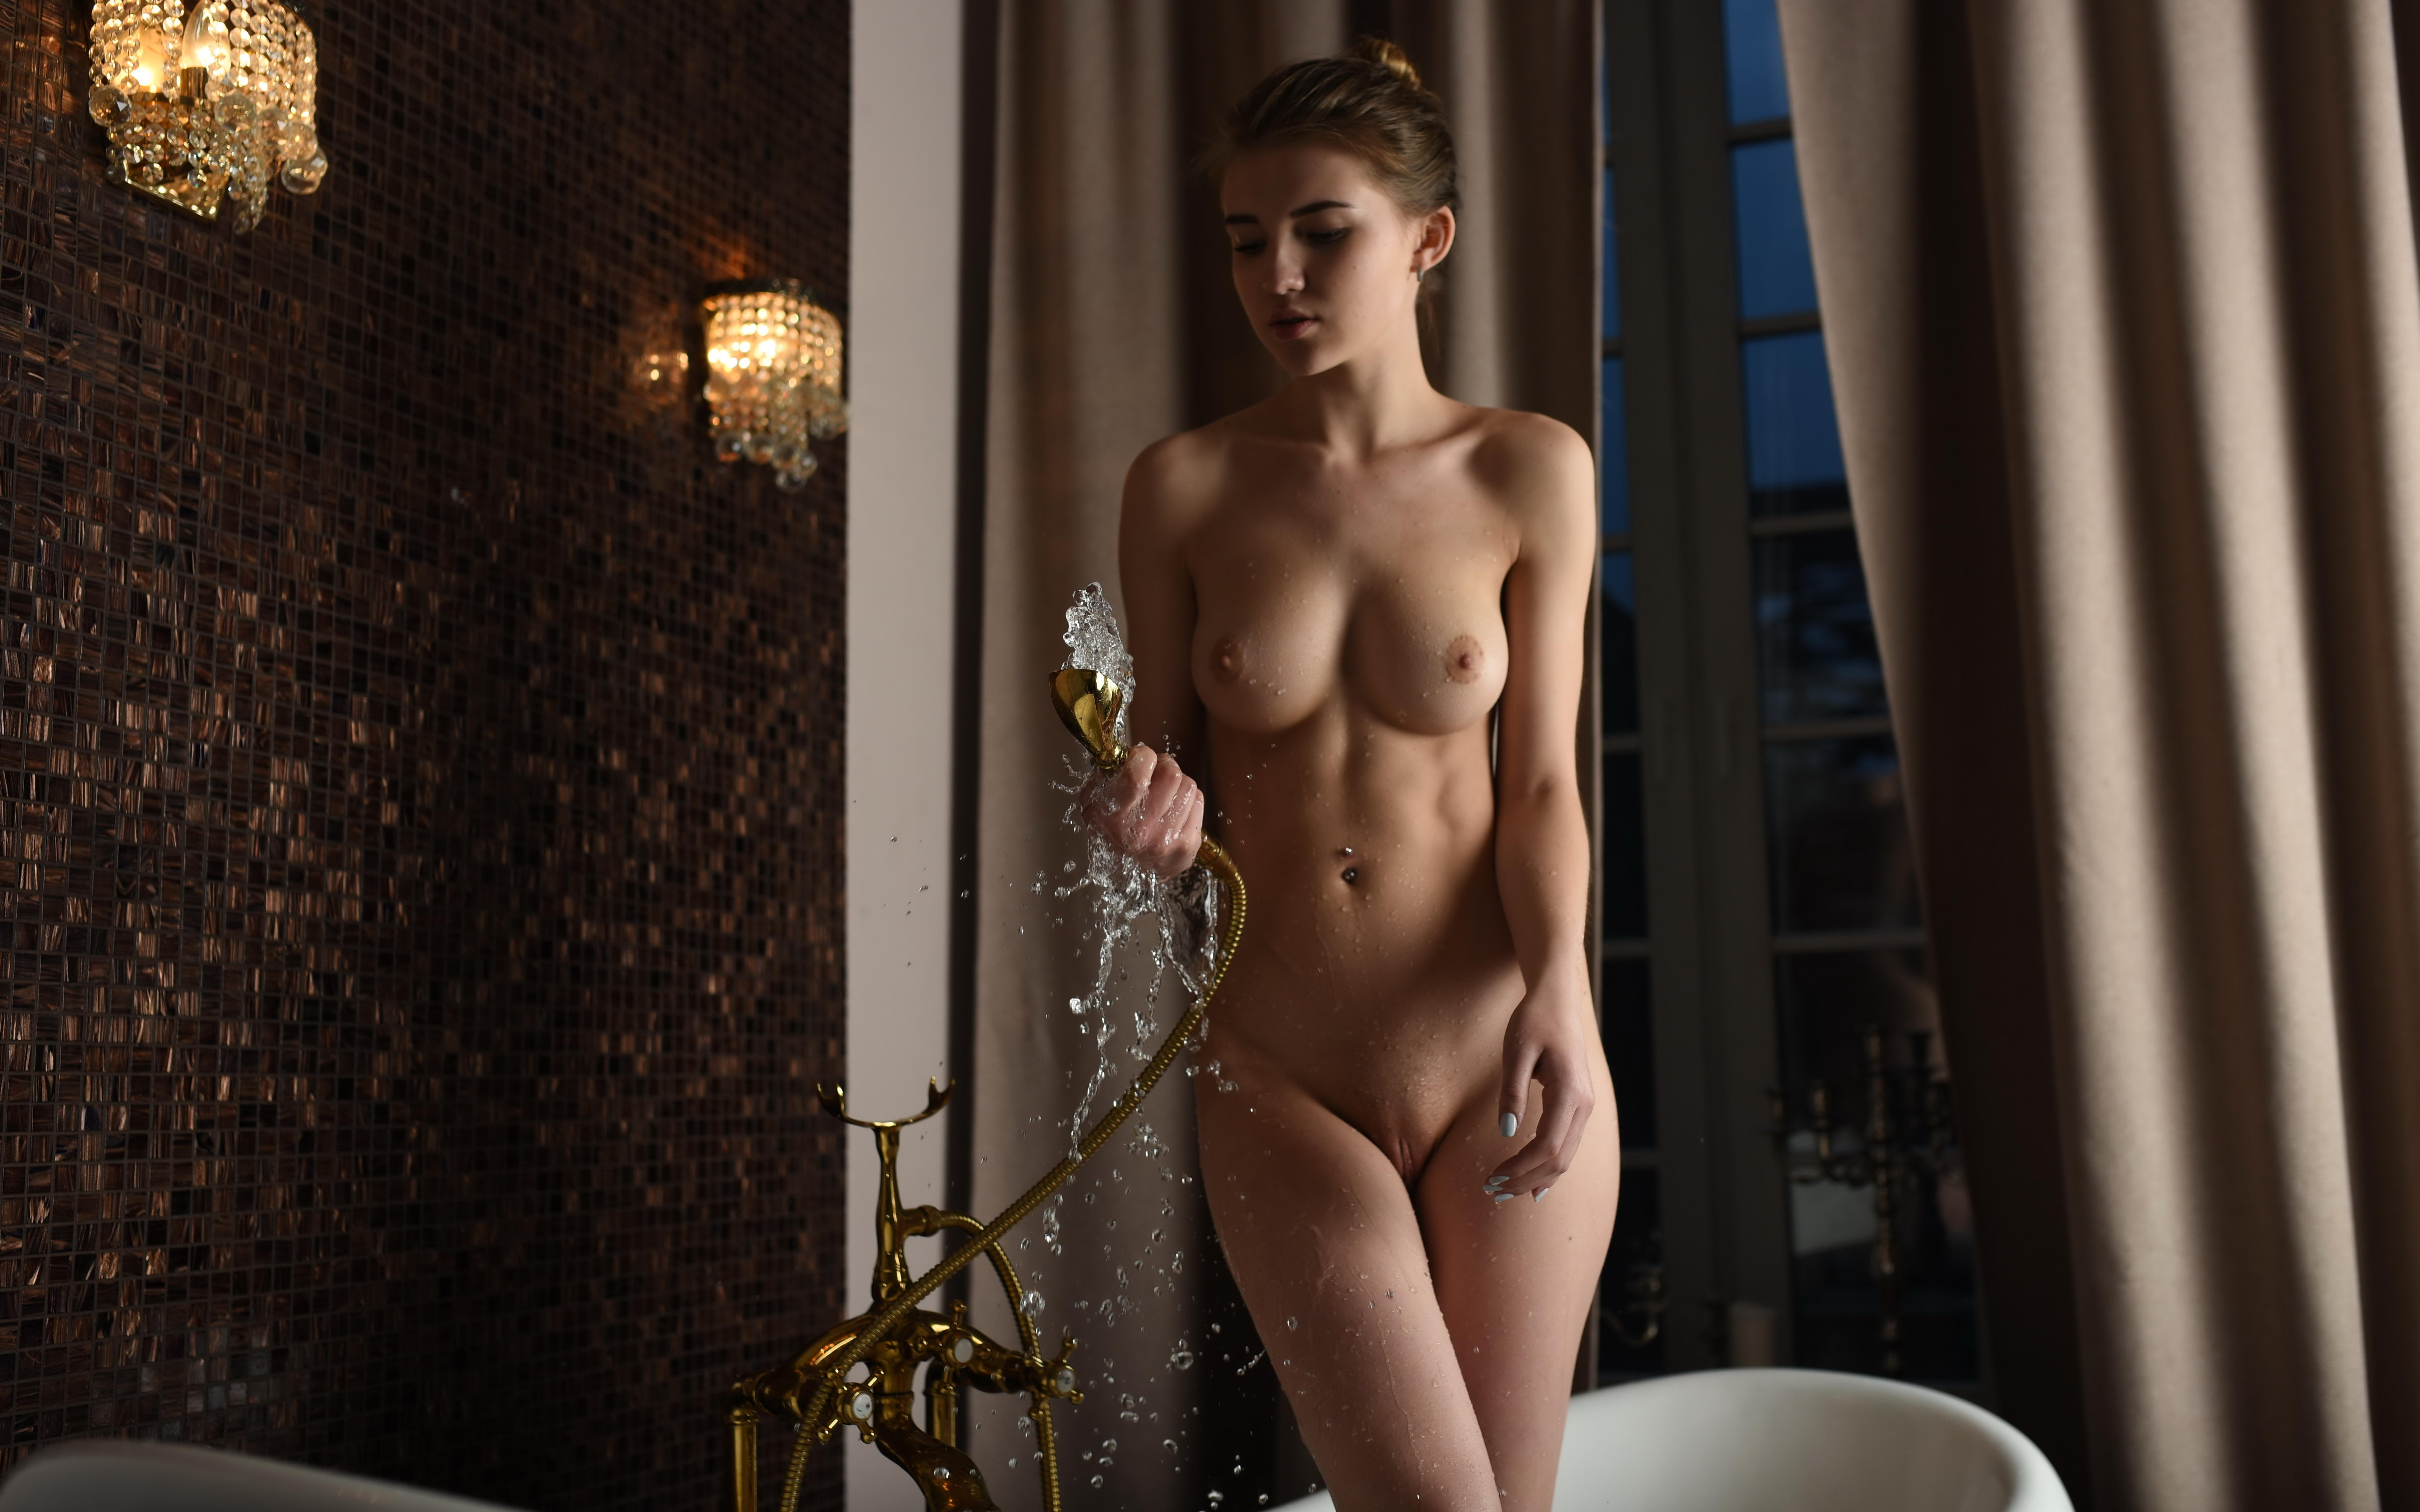 Vick orgy nude caramel girls in mirror slave auction stories